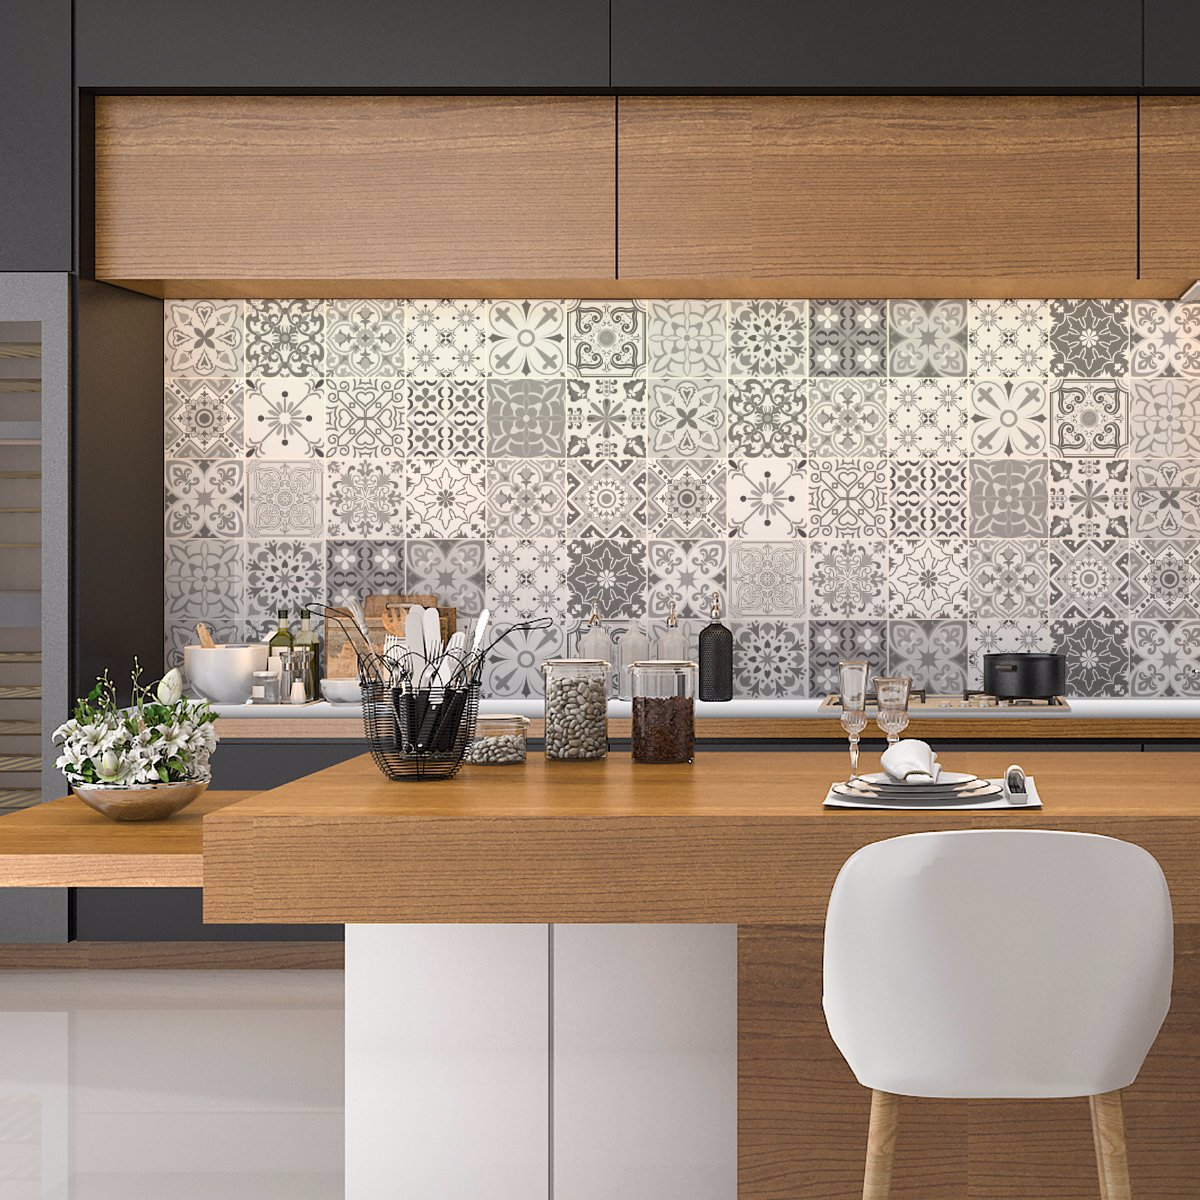 Ambiance Wall Stickers www.ozsale.au — ambiance 24 wall stickers cement tiles shade of